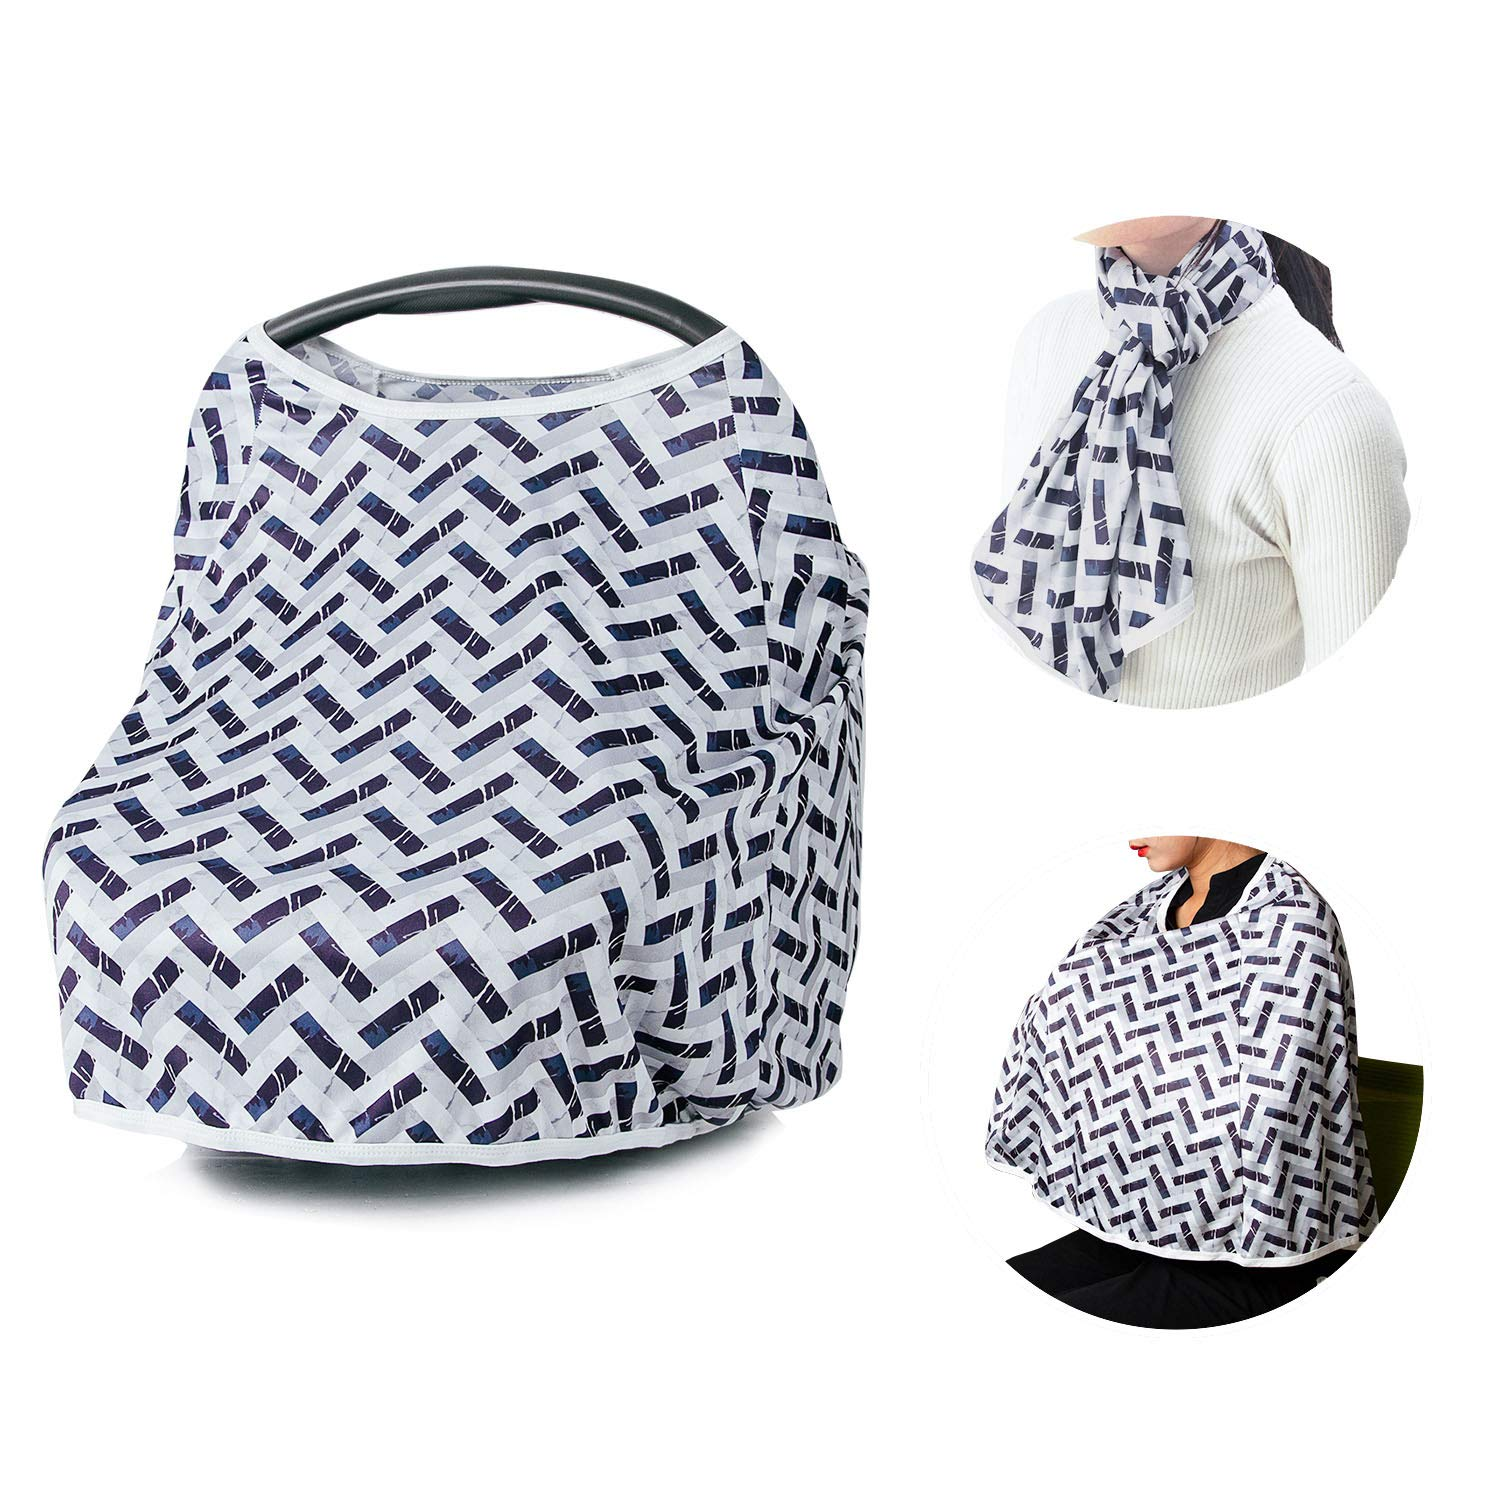 Infant Car Seat Cover Nursing Cover Carseat Canopy Car Seat Covers for Babies Nursing Covers for Breastfeeding Baby Carseat Baby Car Seat Covers Breastfeeding Cover